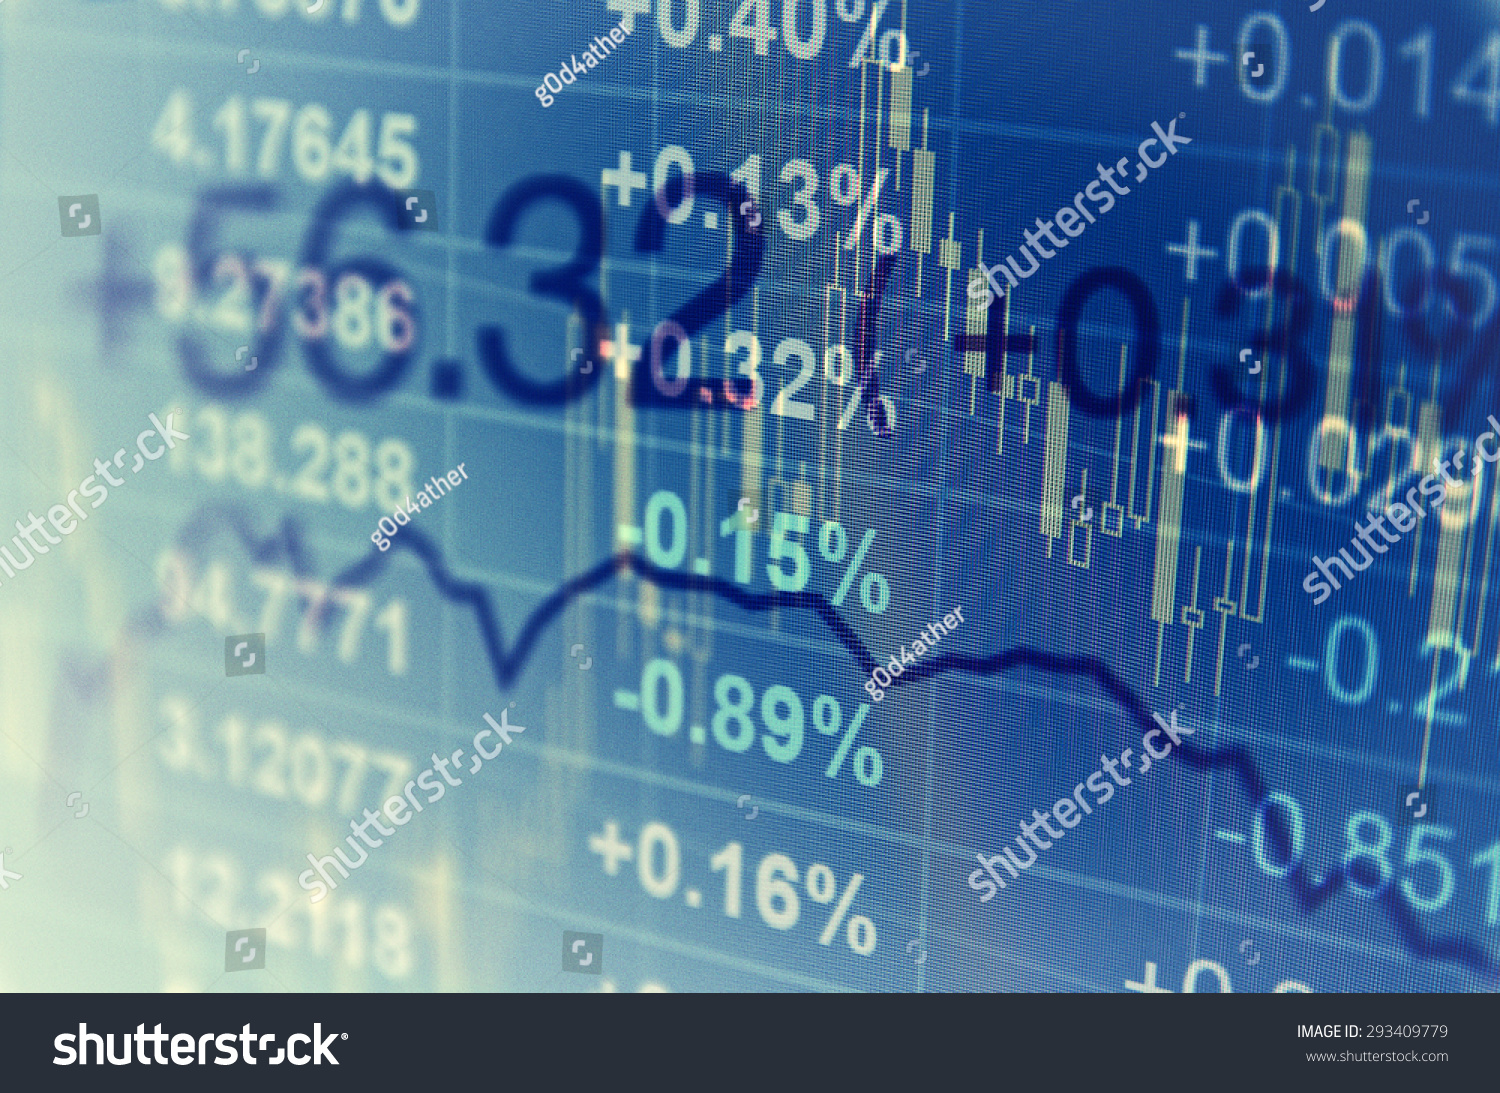 Closeup Computer Monitor Trading Software Multiple Stock Photo 293409779 - Shutterstock